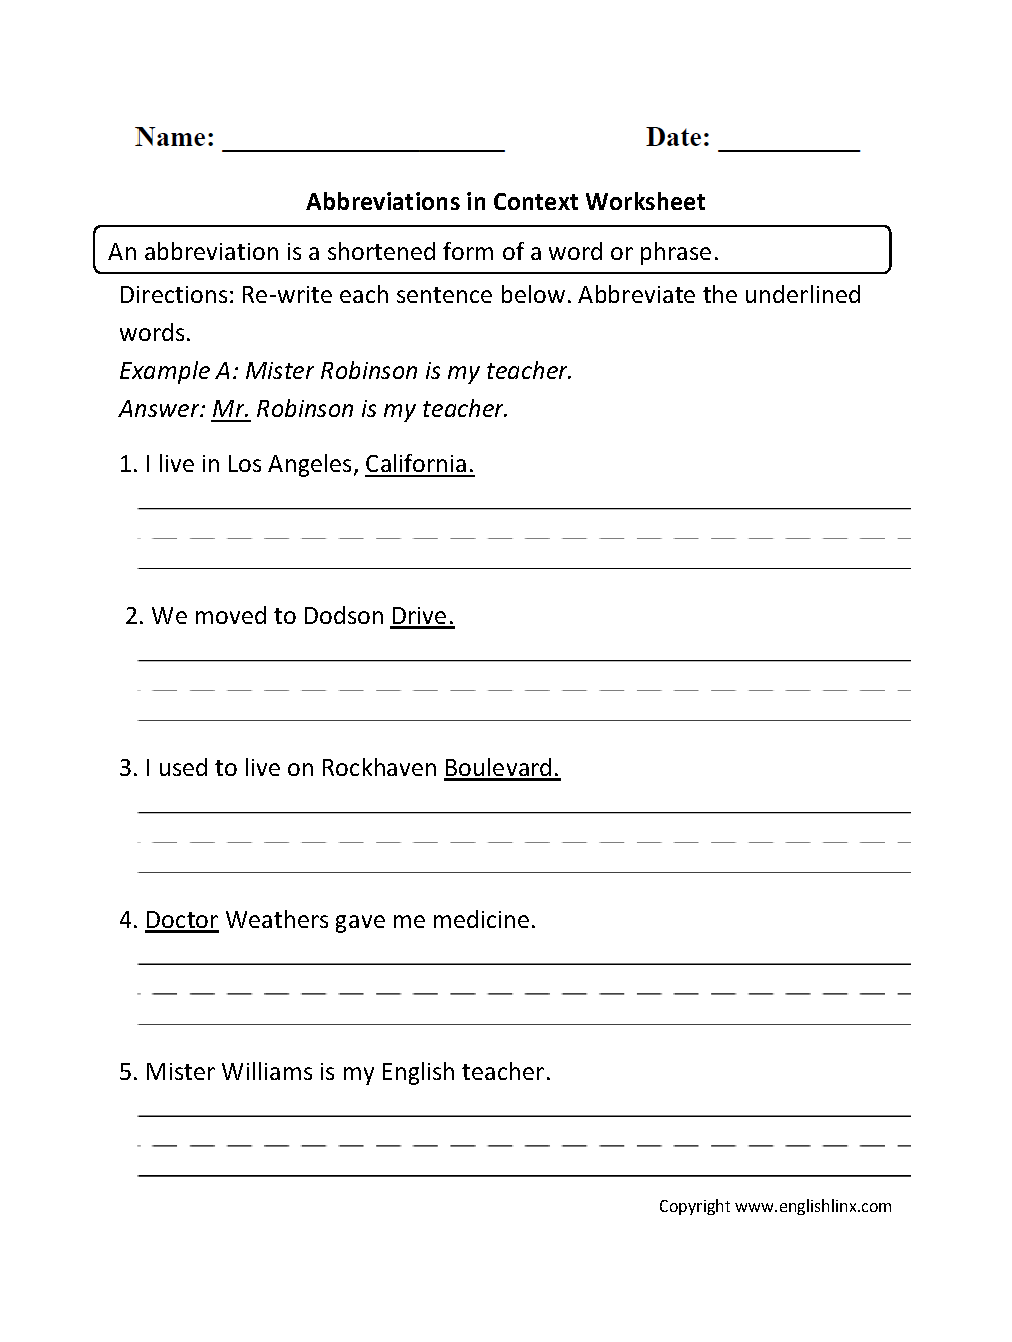 hight resolution of Abbreviations in Context Worksheet   2nd grade worksheets